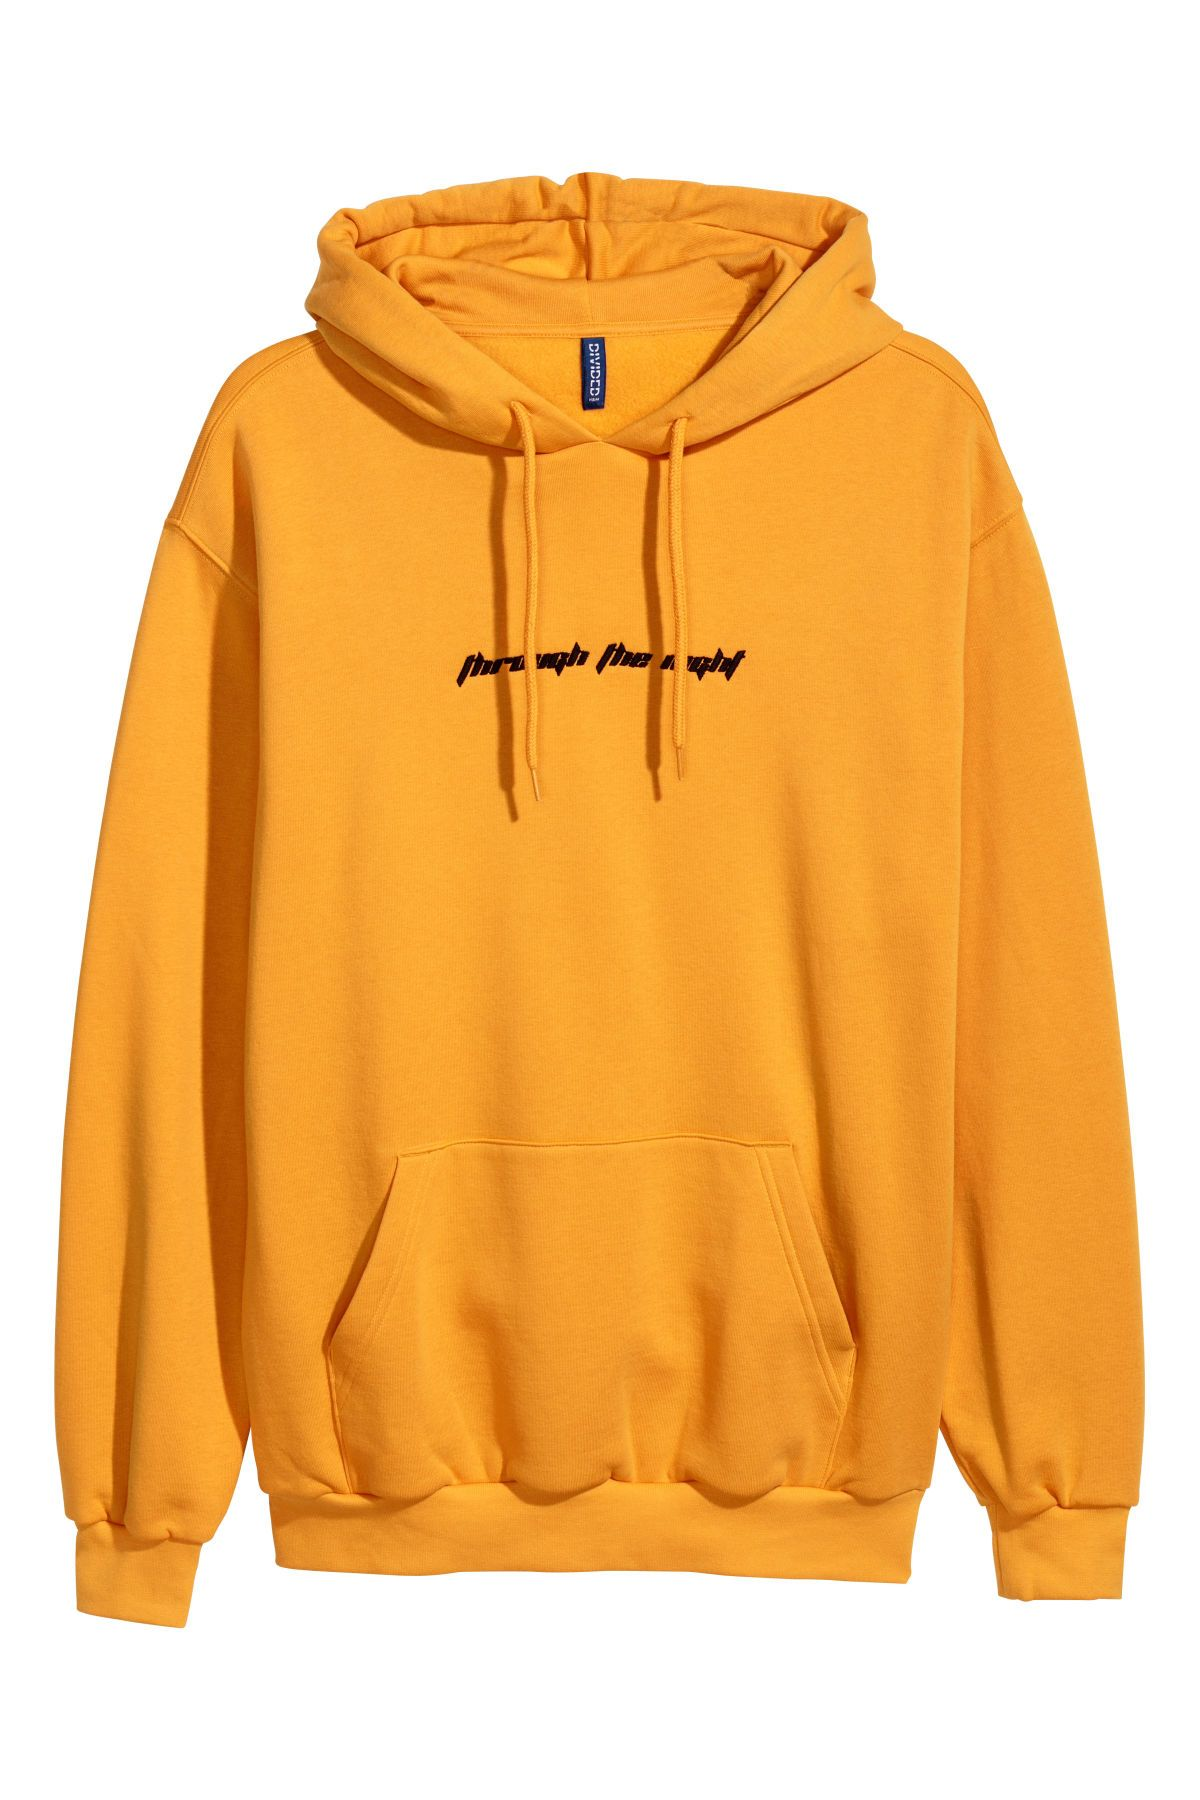 Hooded Sweatshirt With Motif Bright Yellow Men Hm Us Hooded